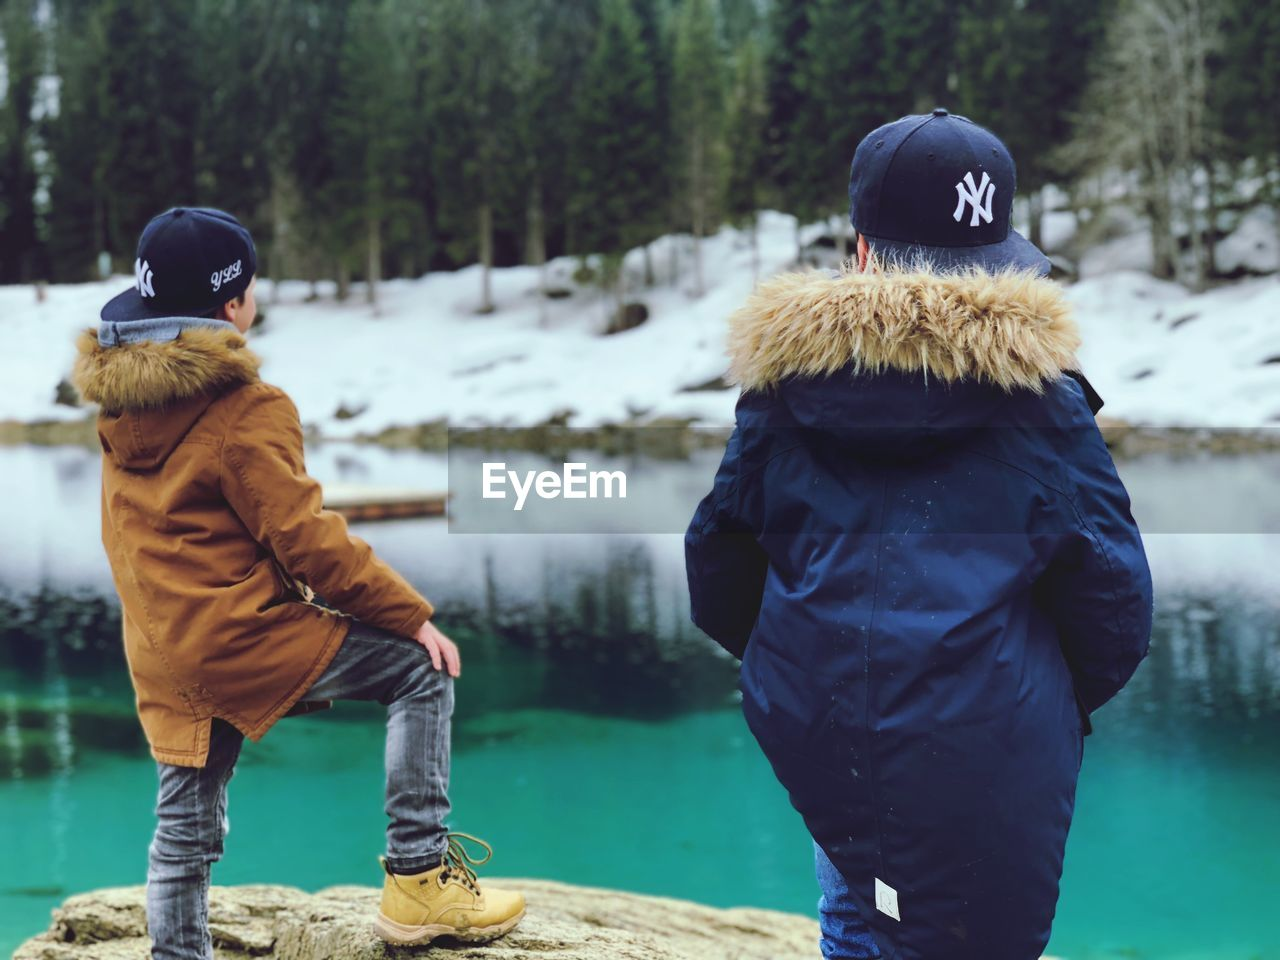 winter, cold temperature, warm clothing, clothing, real people, rear view, day, men, lifestyles, snow, two people, leisure activity, full length, tree, focus on foreground, nature, people, hat, plant, hood - clothing, outdoors